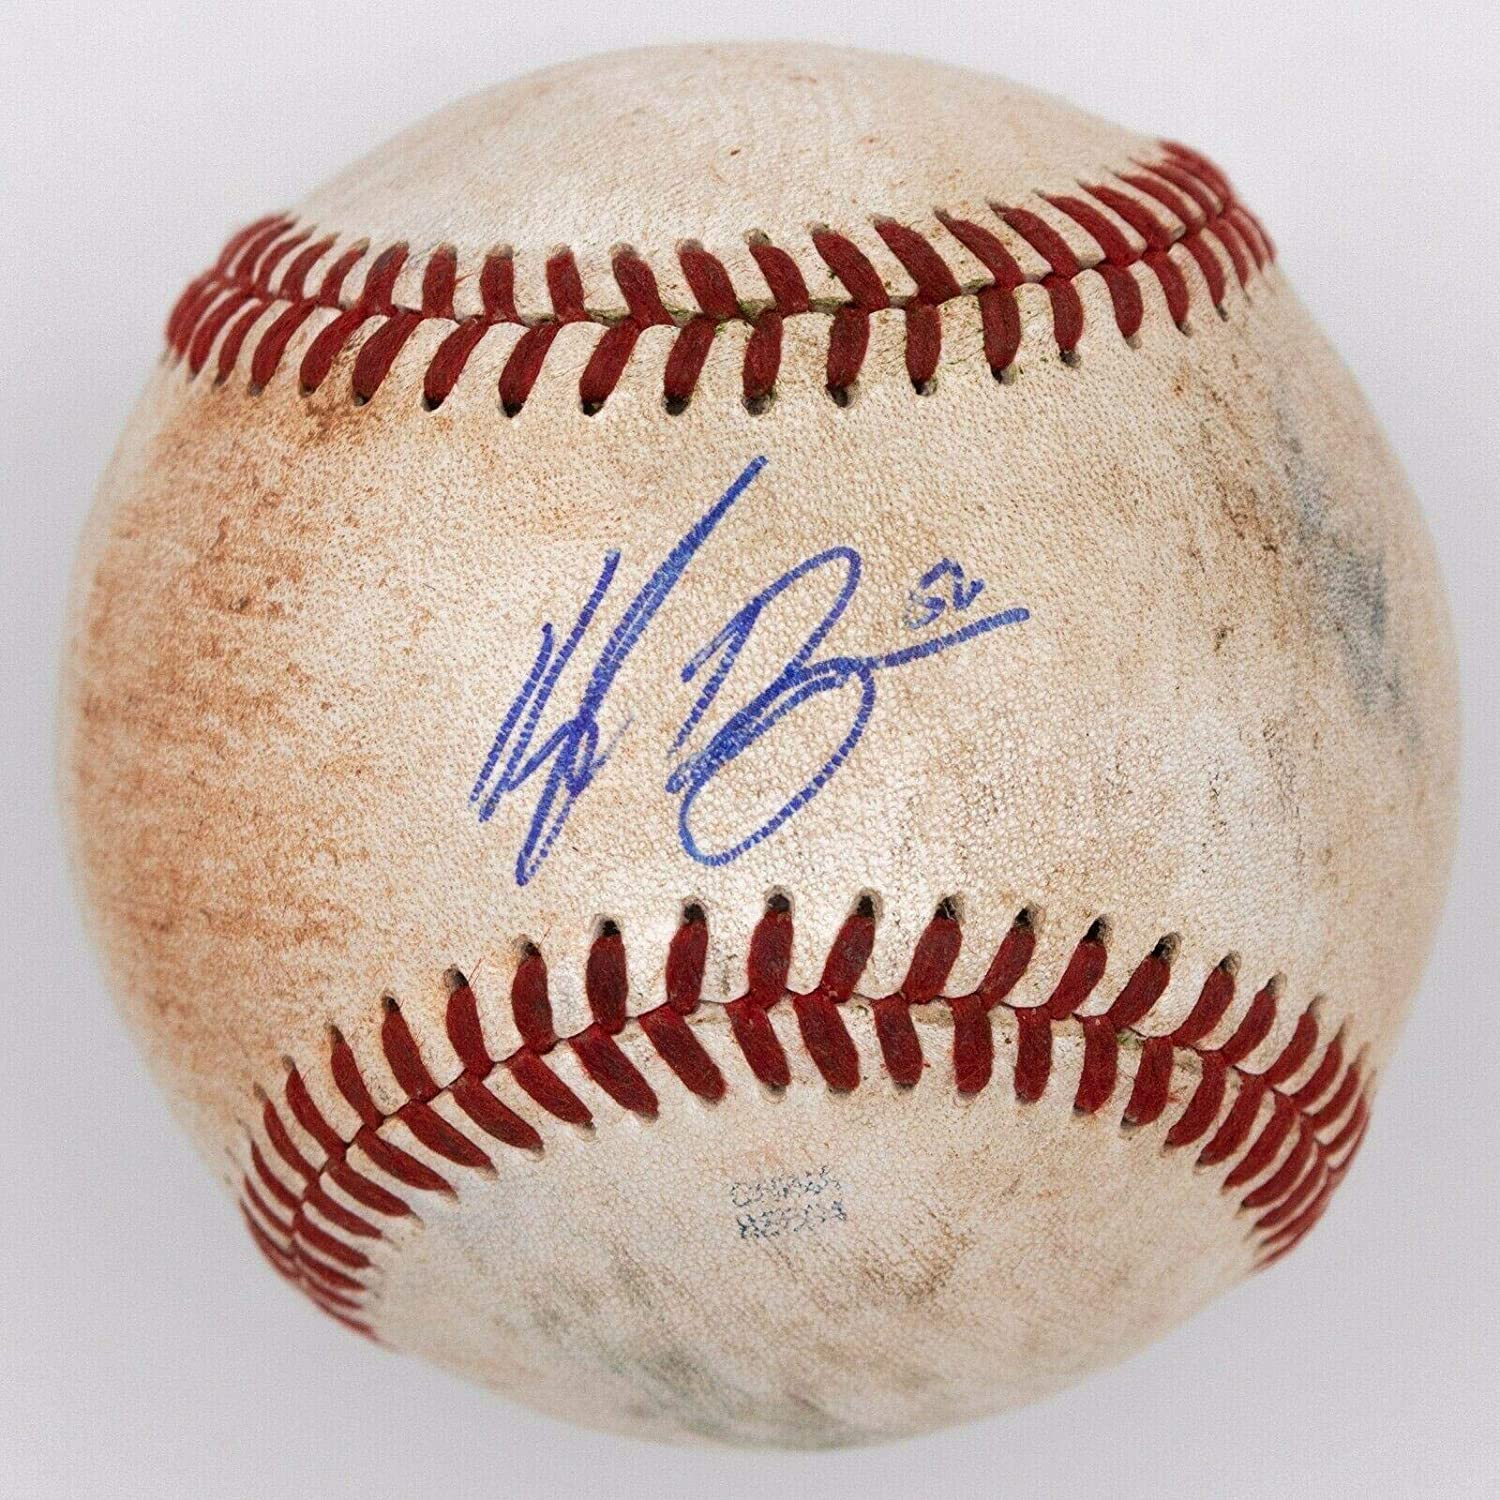 Kyle Ryan Signed Baseball BAS Chicago Cubs Detroit Tigers - Beckett Authentication - Autographed Baseballs